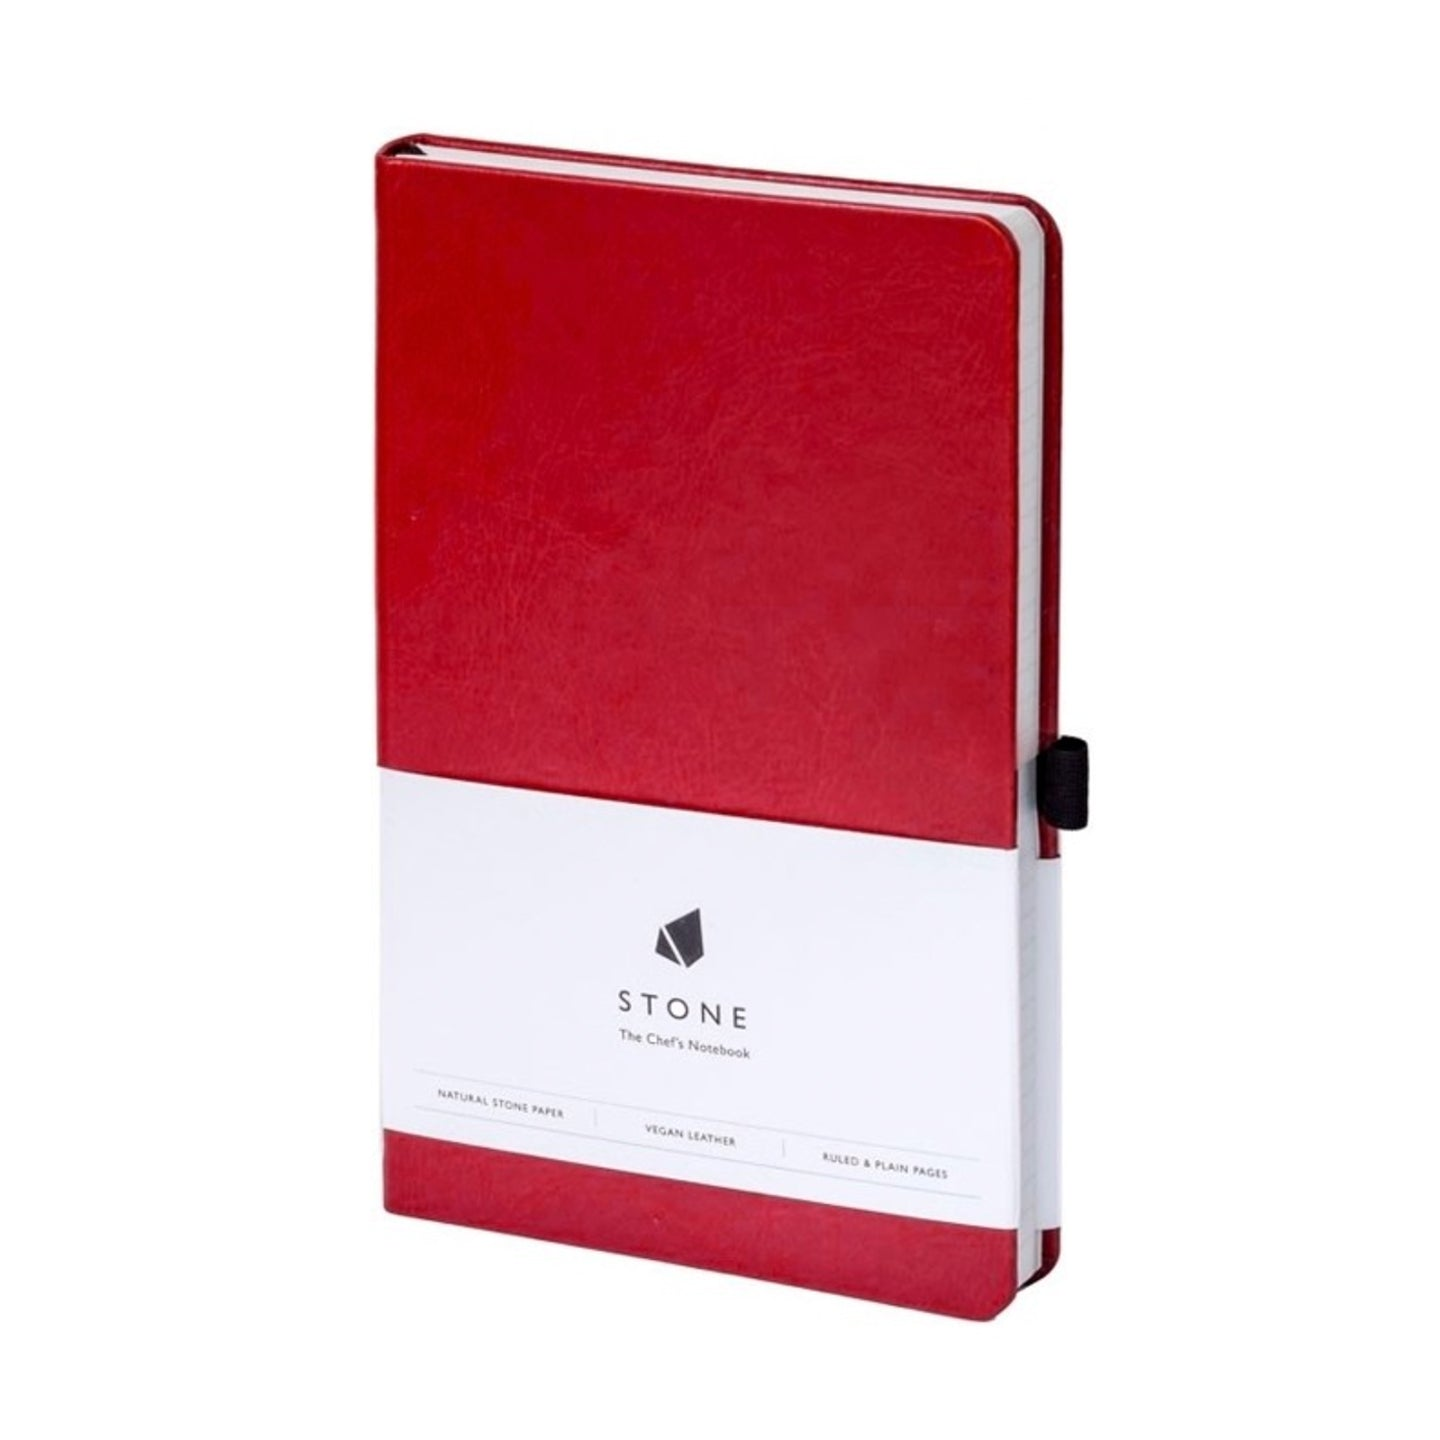 Stone The Chef's Notebook / Red